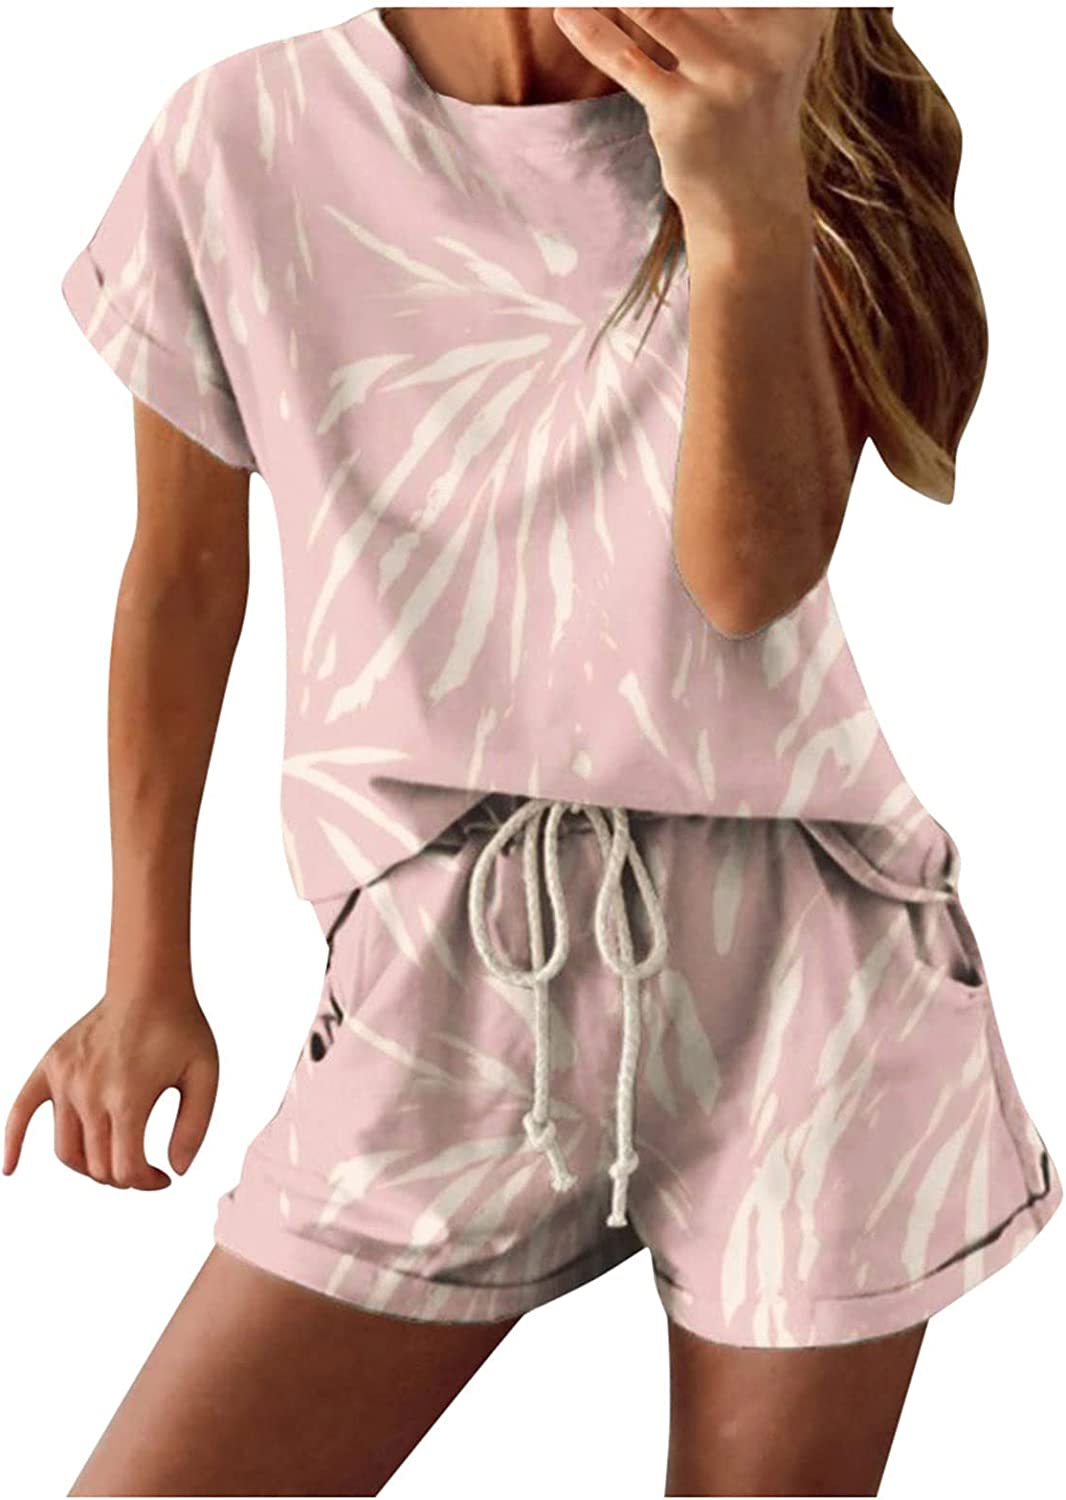 Women Suits Sets, Ladies Print Sleepwear O-Neck Short Sleeved Shorts Sports Leisure Two-Piece Suit